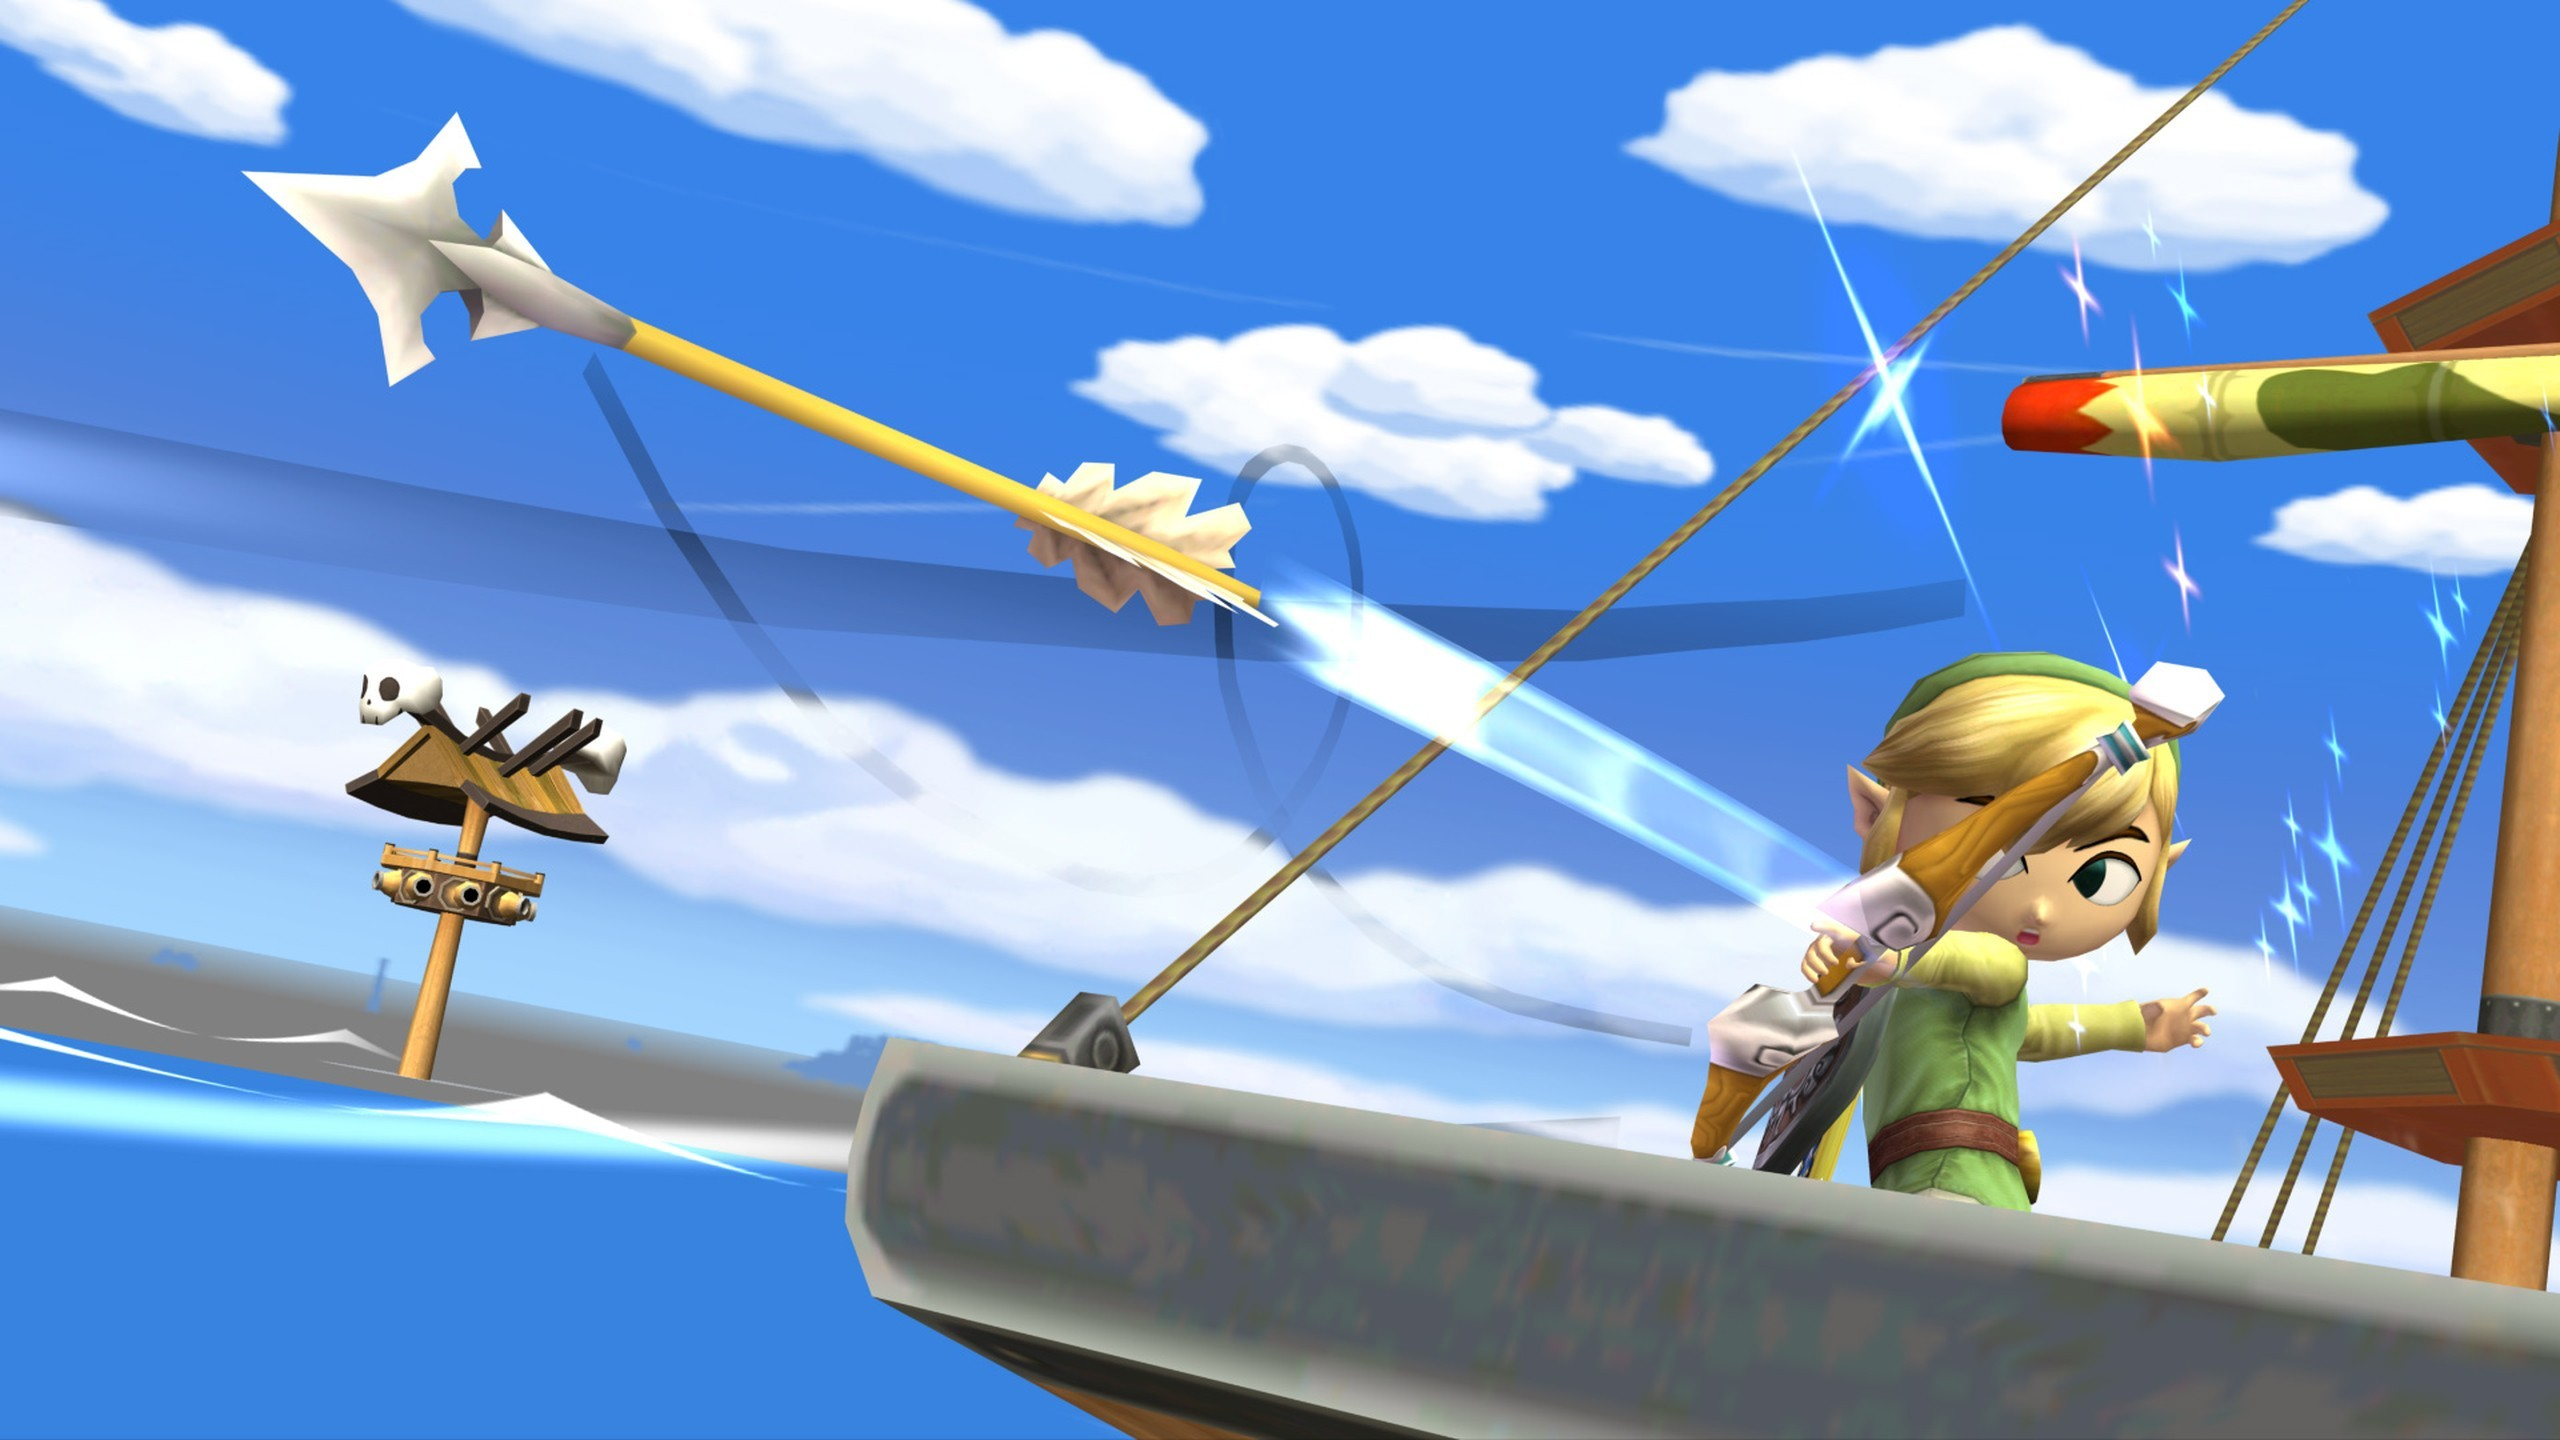 The legend of zelda zelda: wind waker wallpaper